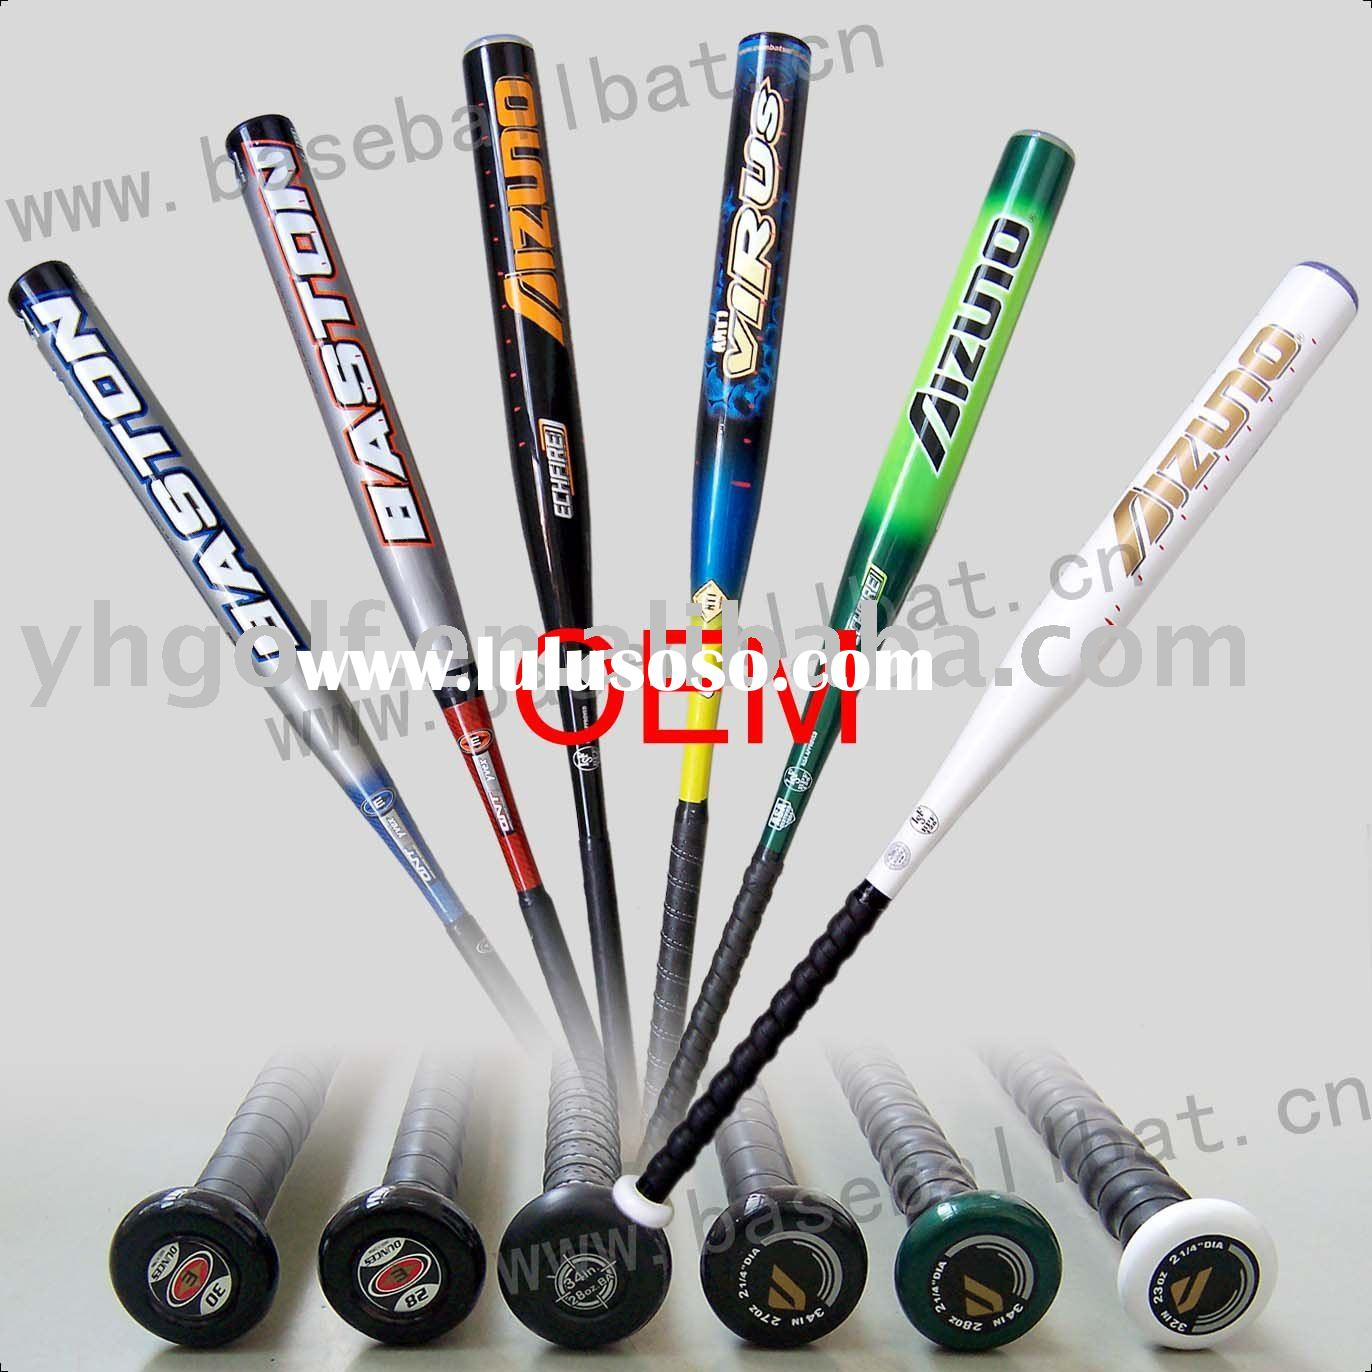 Carbon fiber baseball bat/Best quality/Competitive price